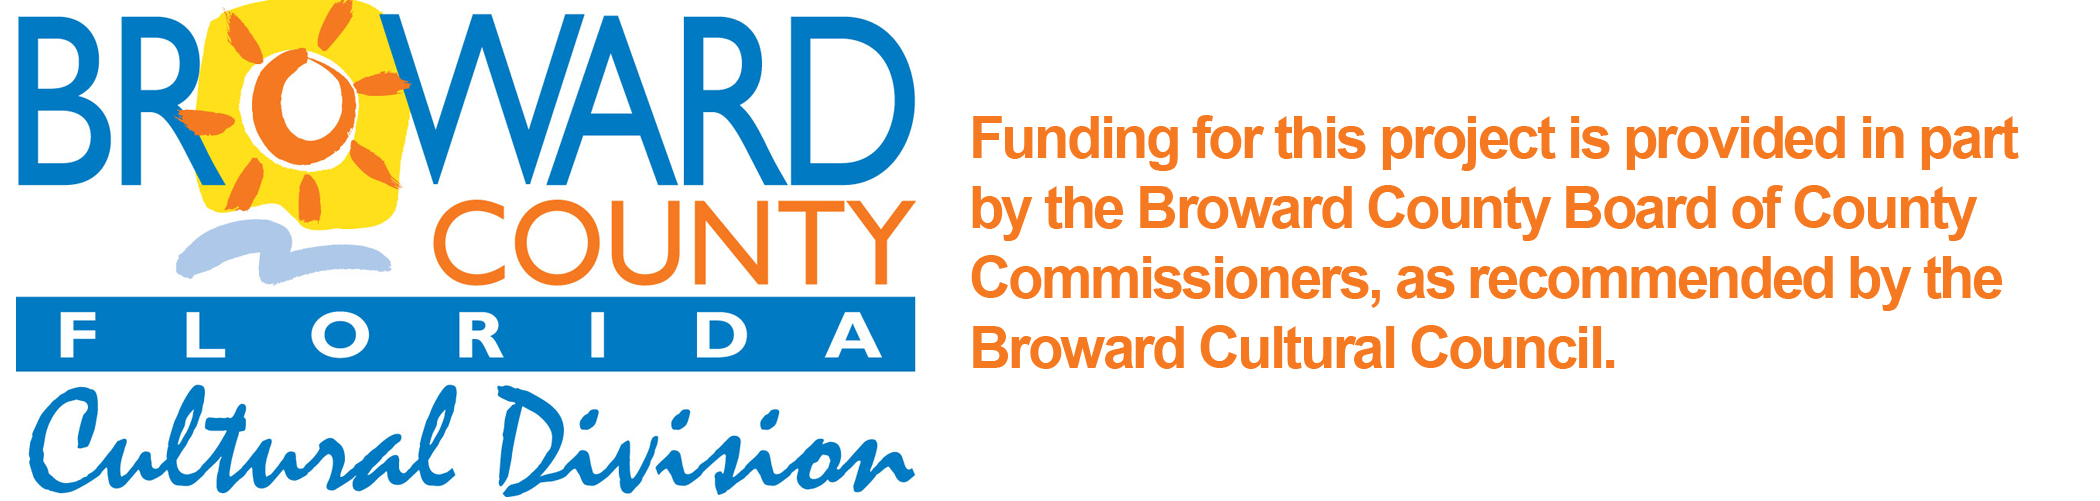 Broward County Cultural Division logo -color